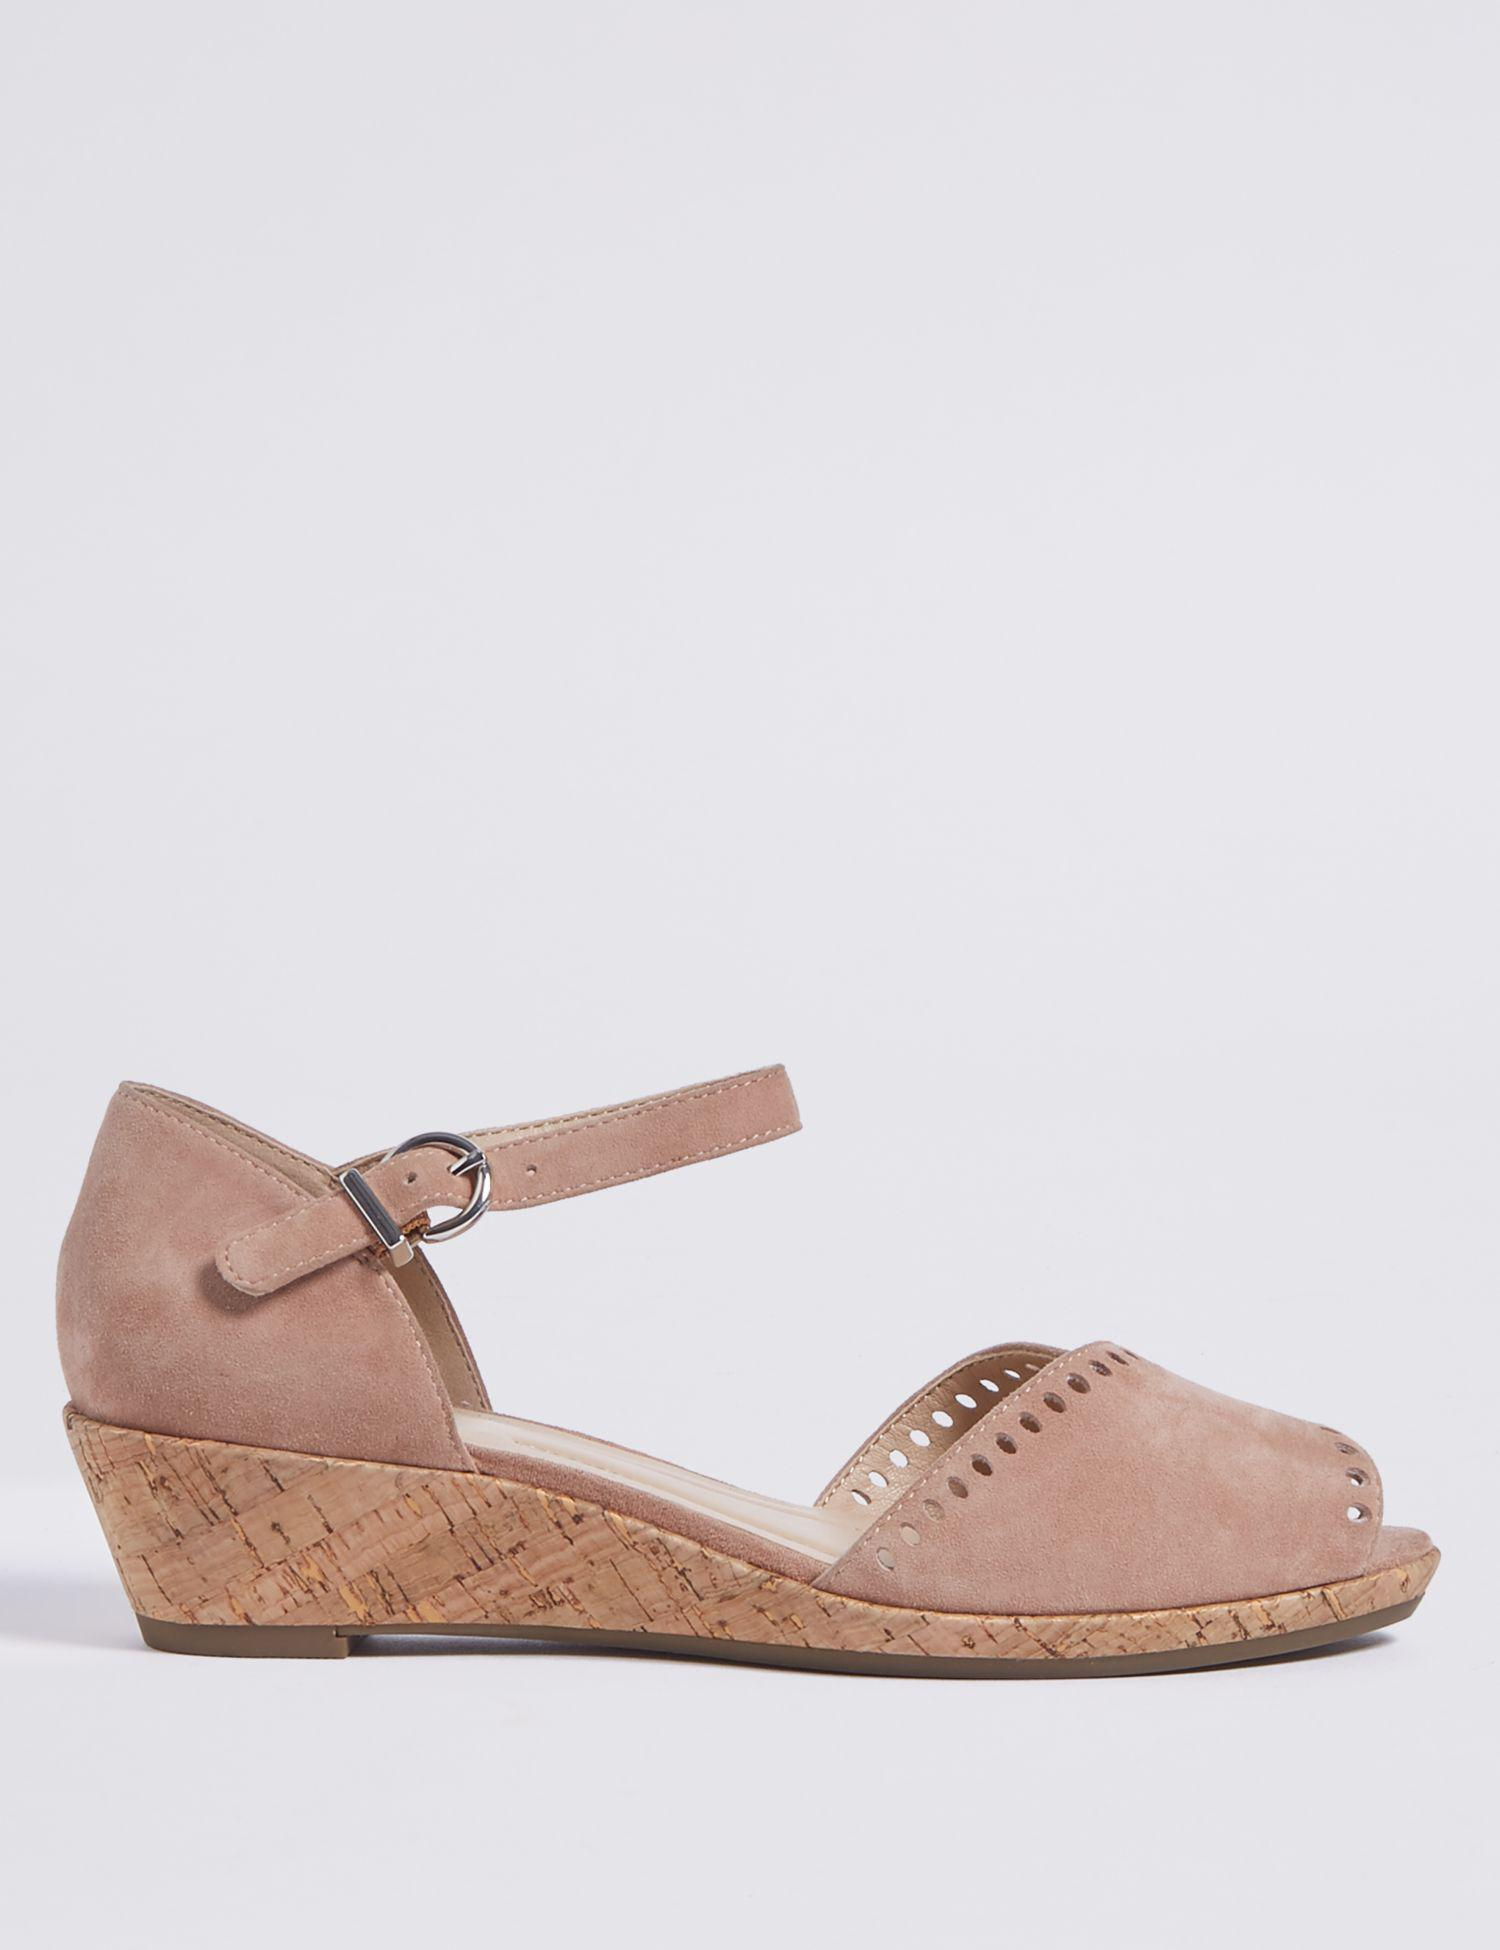 bcc0624b181 Marks   Spencer Wide Fit Suede Wedge Sandals in Pink - Lyst